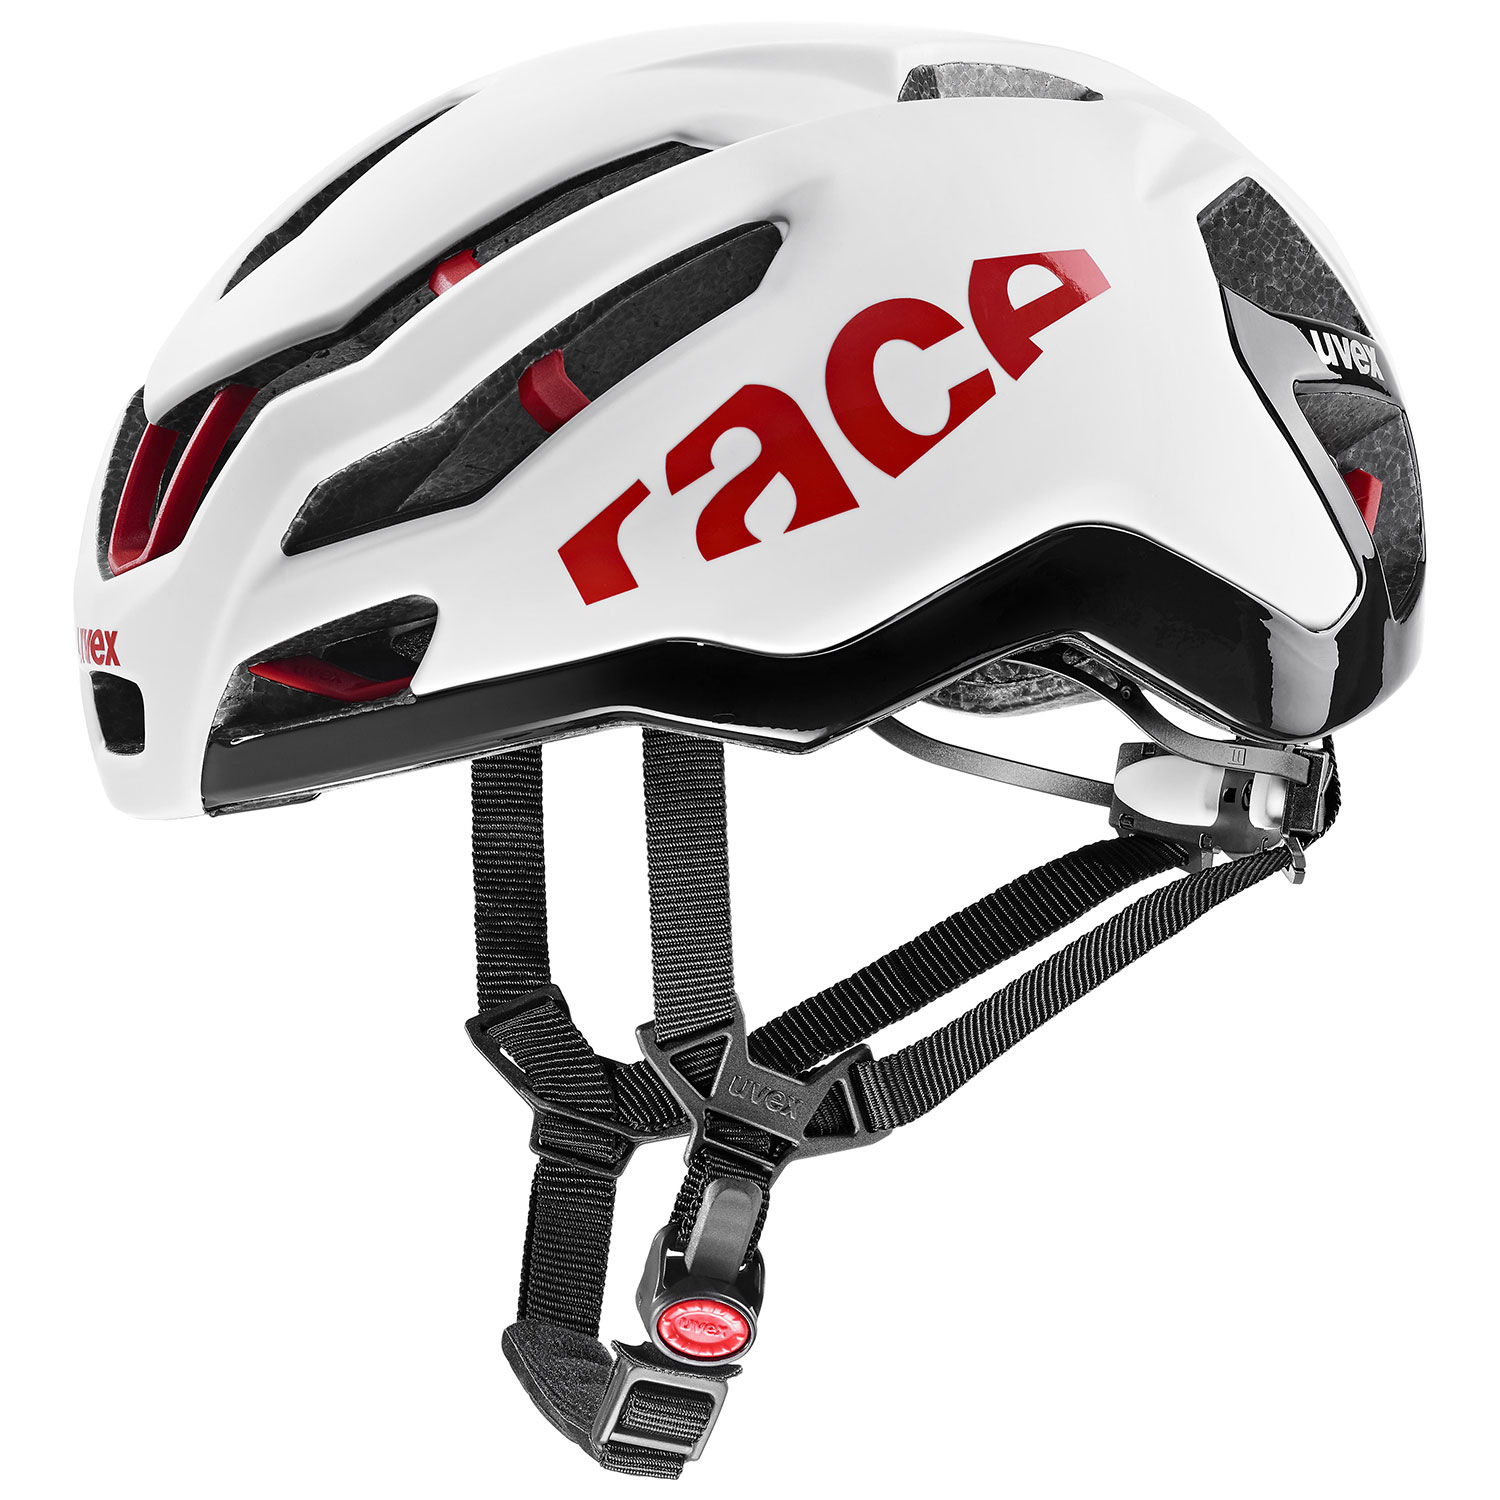 2021 UVEX HELMA RACE 9, WHITE - RED 58-61